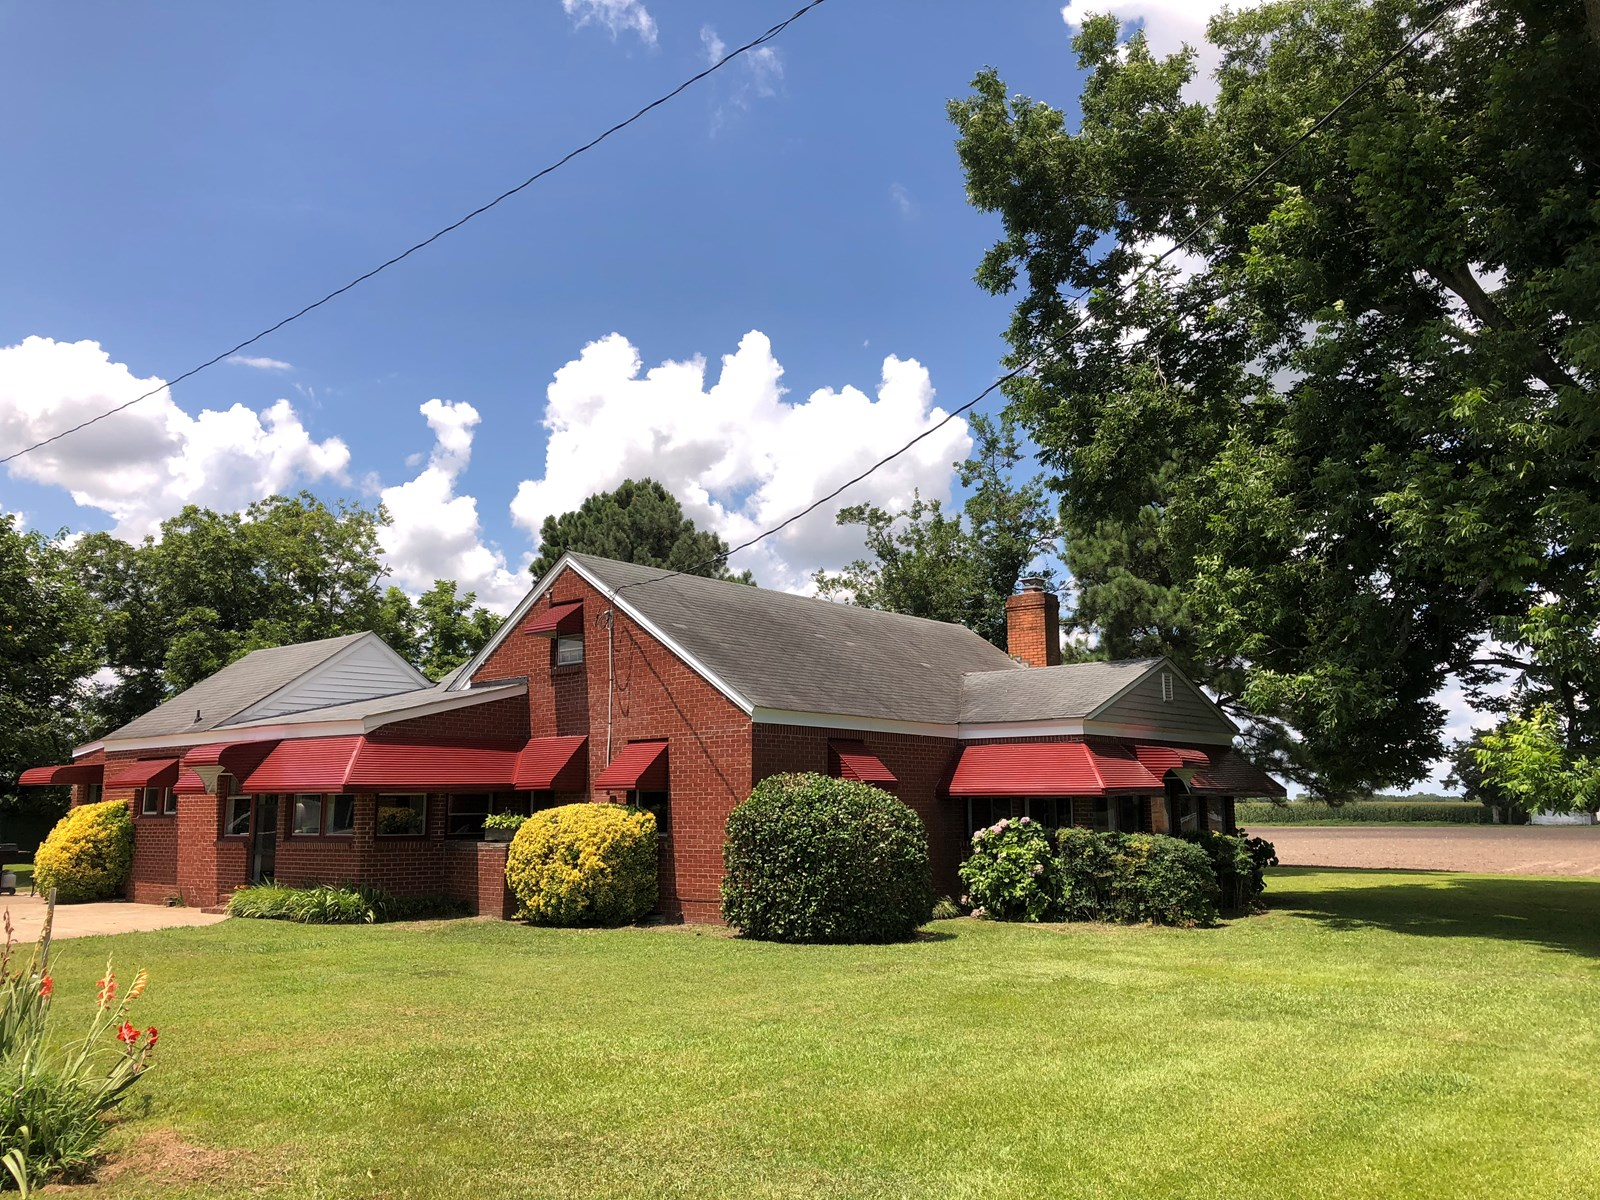 3 Bedroom-2 Bath on 4 Acres just outside the city limits